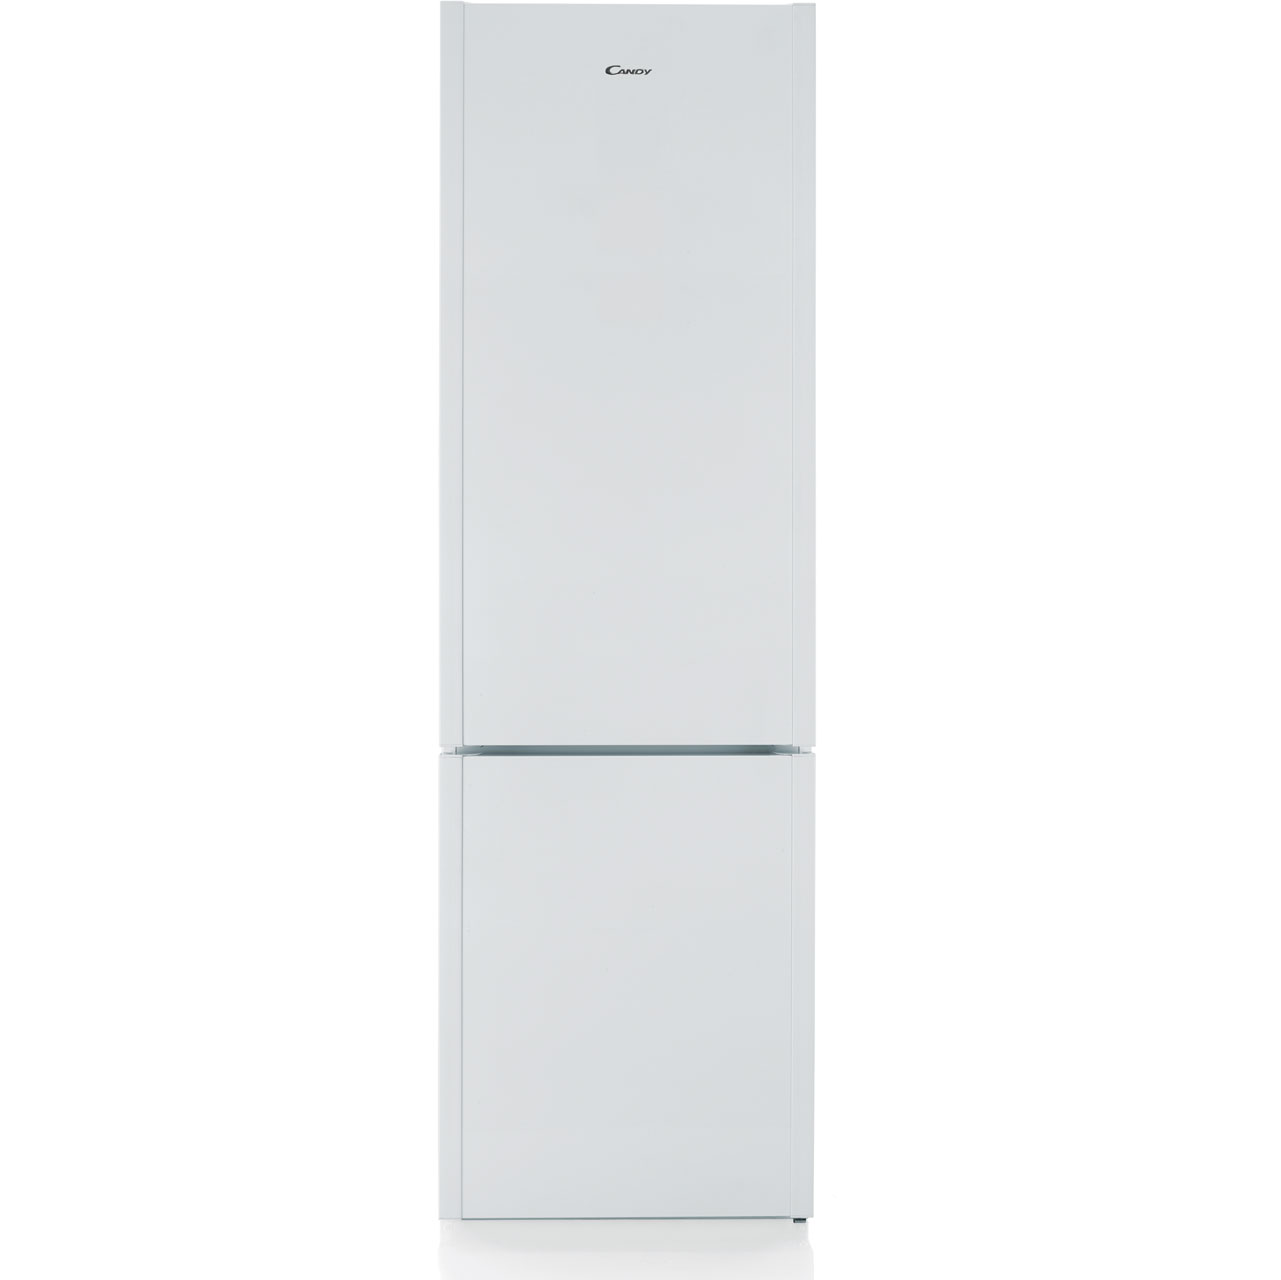 Candy CCPF6182W Free Standing Fridge Freezer Frost Free in White